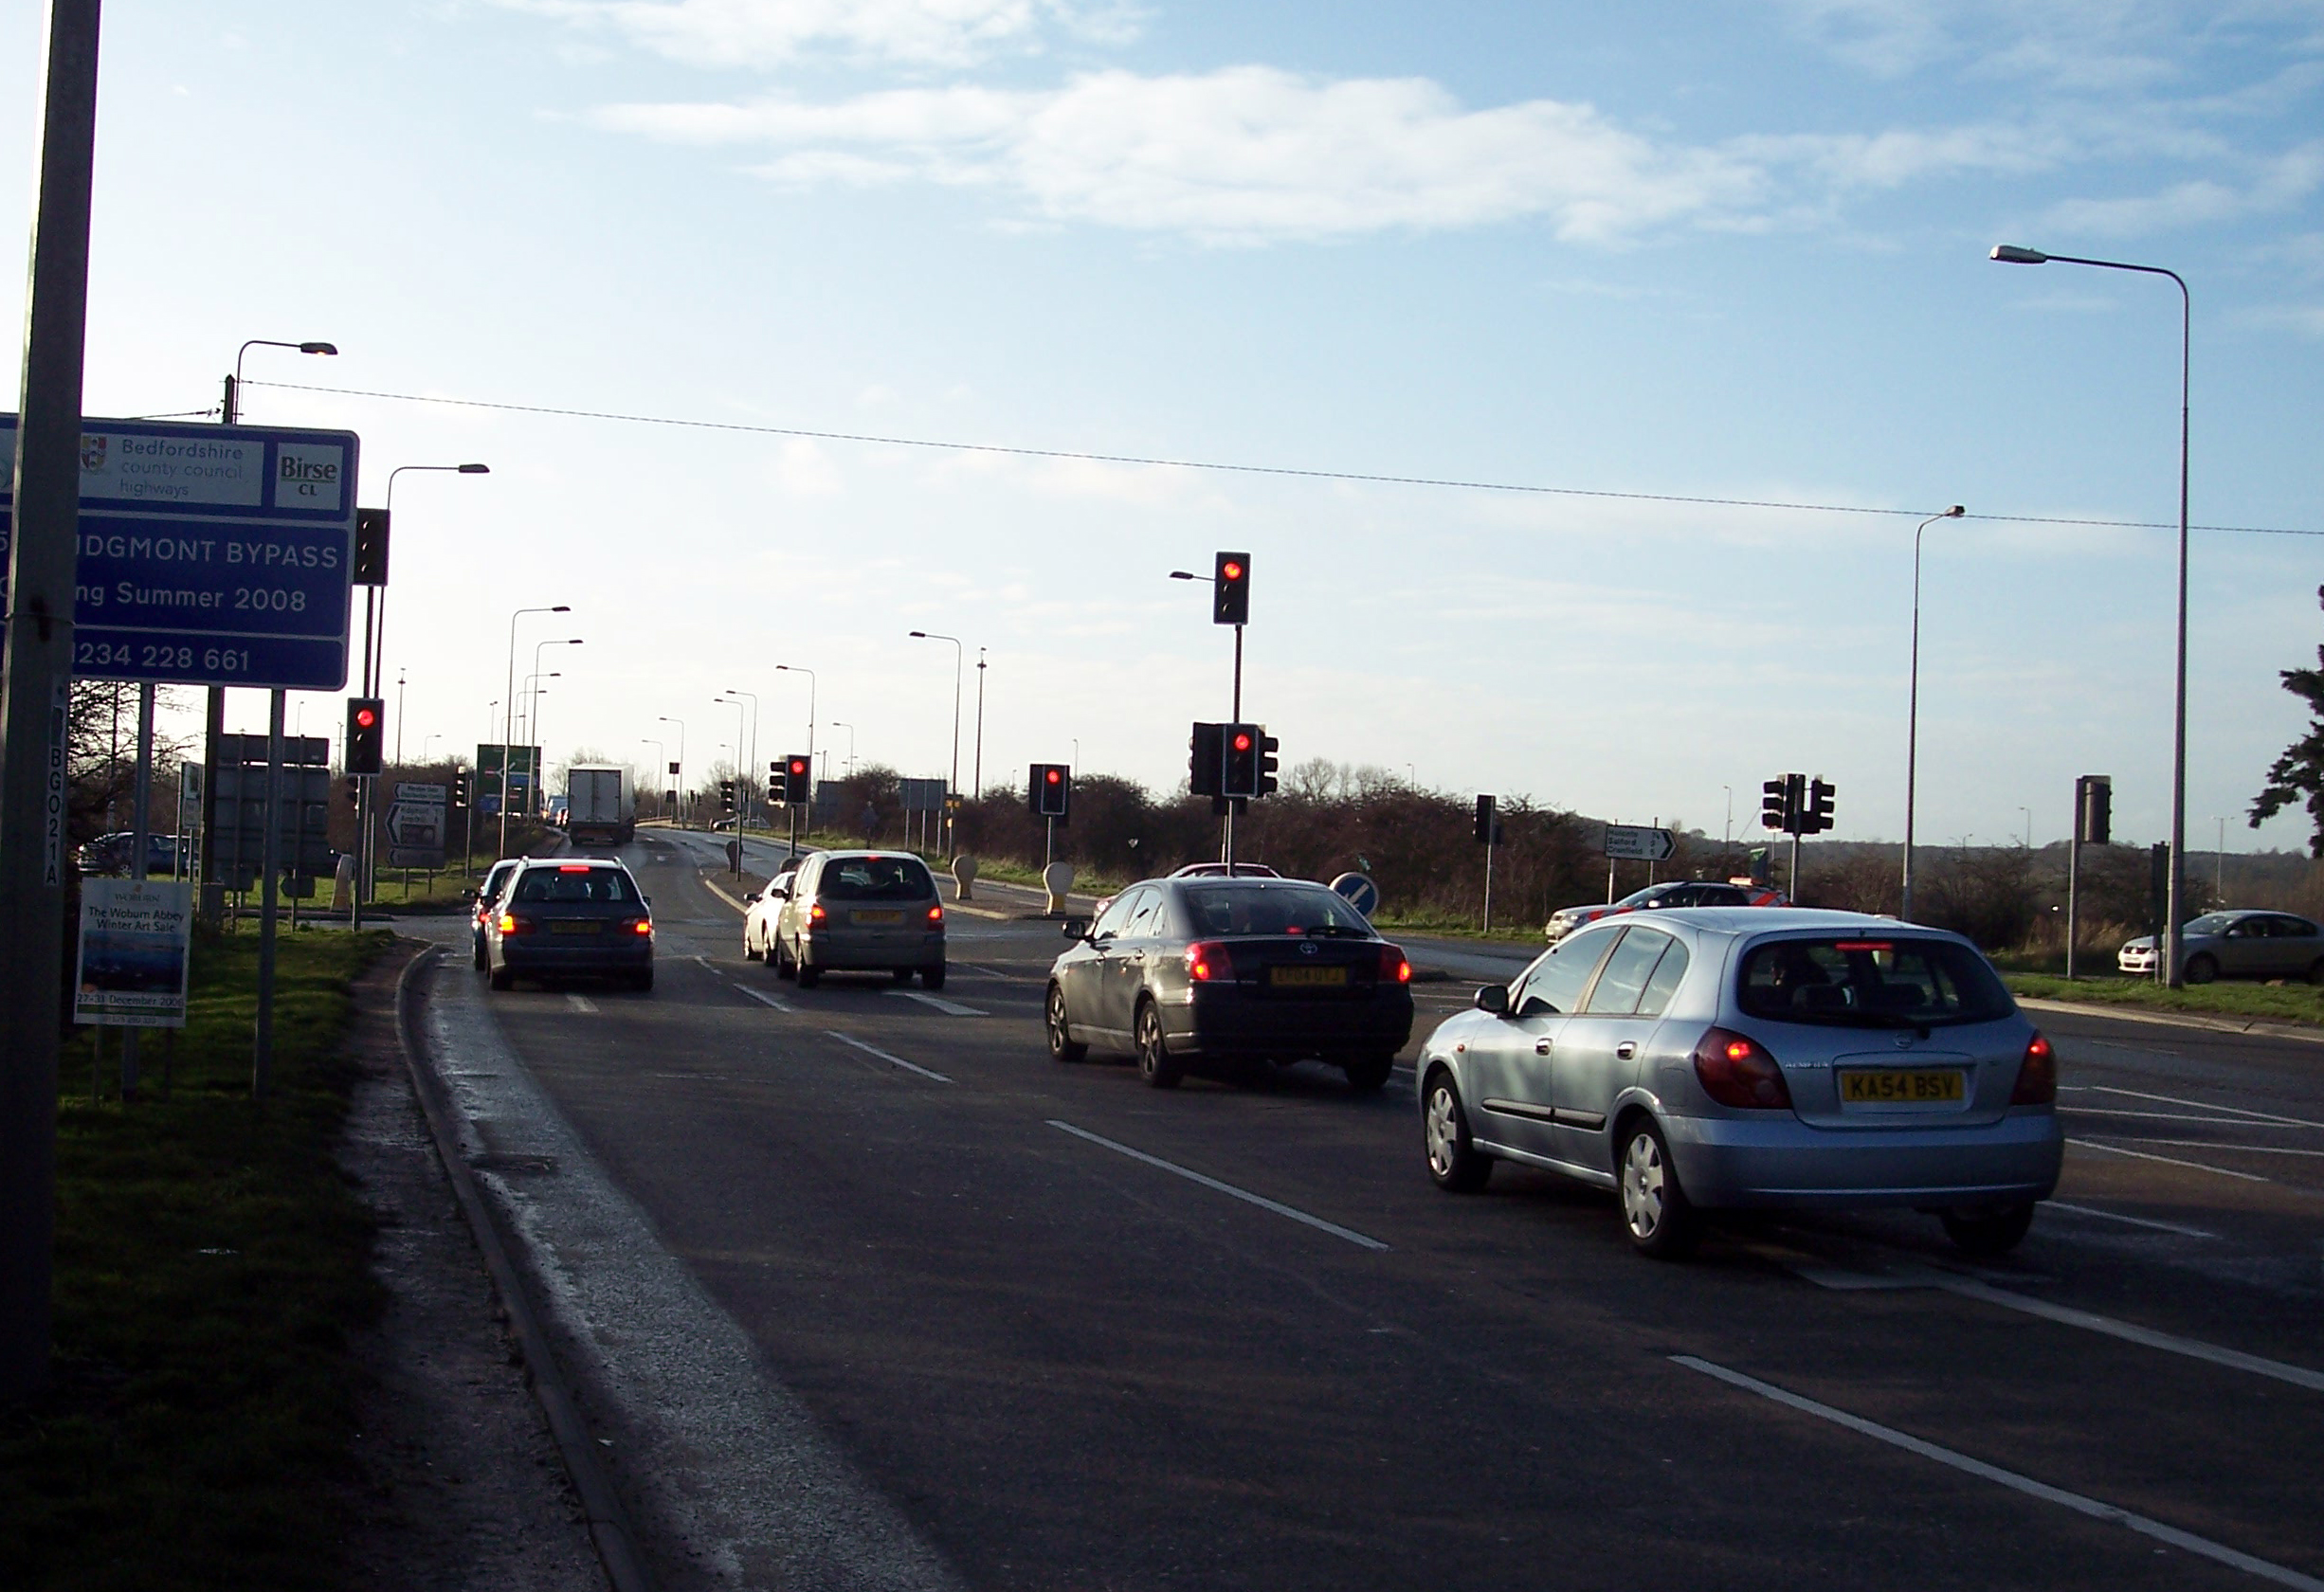 Approaching Junction 13 to join the M1. Picture taken 30th December 2006.